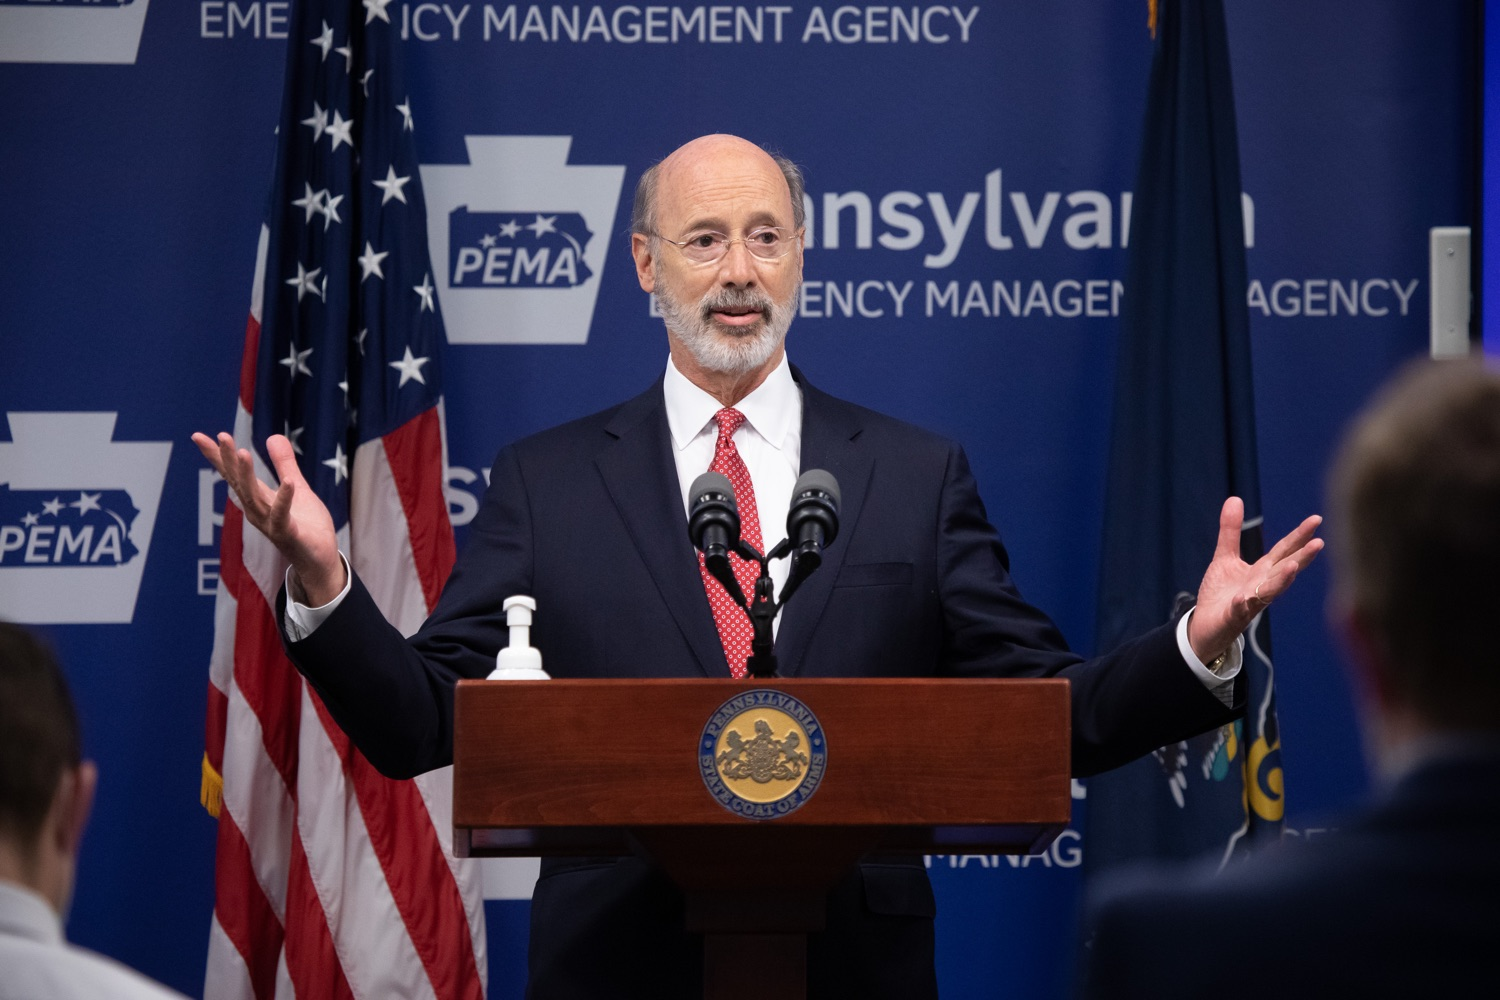 "<a href=""https://filesource.wostreaming.net/commonwealthofpa/photo/18091_gov_covid_update_dz_03.jpg"" target=""_blank"">⇣ Download Photo<br></a>Pennsylvania Governor Tom Wolf answering questions from the press.  As states across the country begin to reopen and nearly half are seeing COVID-19 cases rise, Governor Tom Wolf announced Friday that Pennsylvania is not one of them. ...Today at a daily COVID briefing with Health Secretary Dr. Rachel Levine, he noted another milestone: The Centers for Disease Control and Prevention proprietary data for states indicates that we are one of just three states that has had a downward trajectory of COVID- 19 cases for more than 42 days. The other two states are Montana and Hawaii.  JUNE 17, 2020 - HARRISBURG, PA."